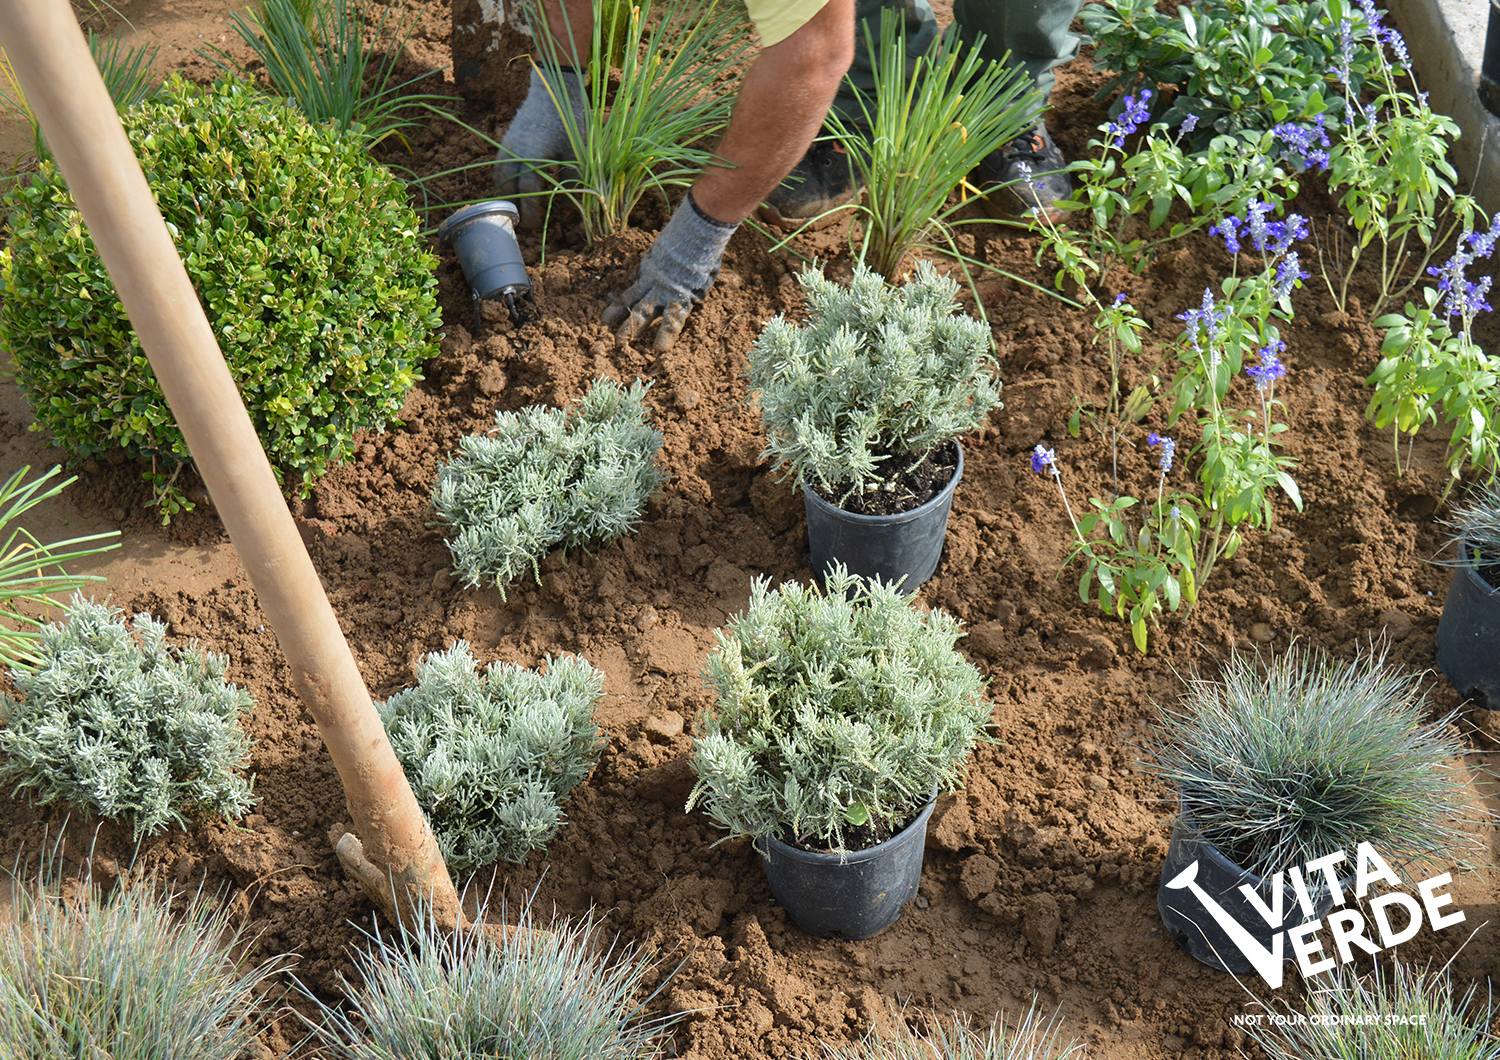 Planting phase of a new garden